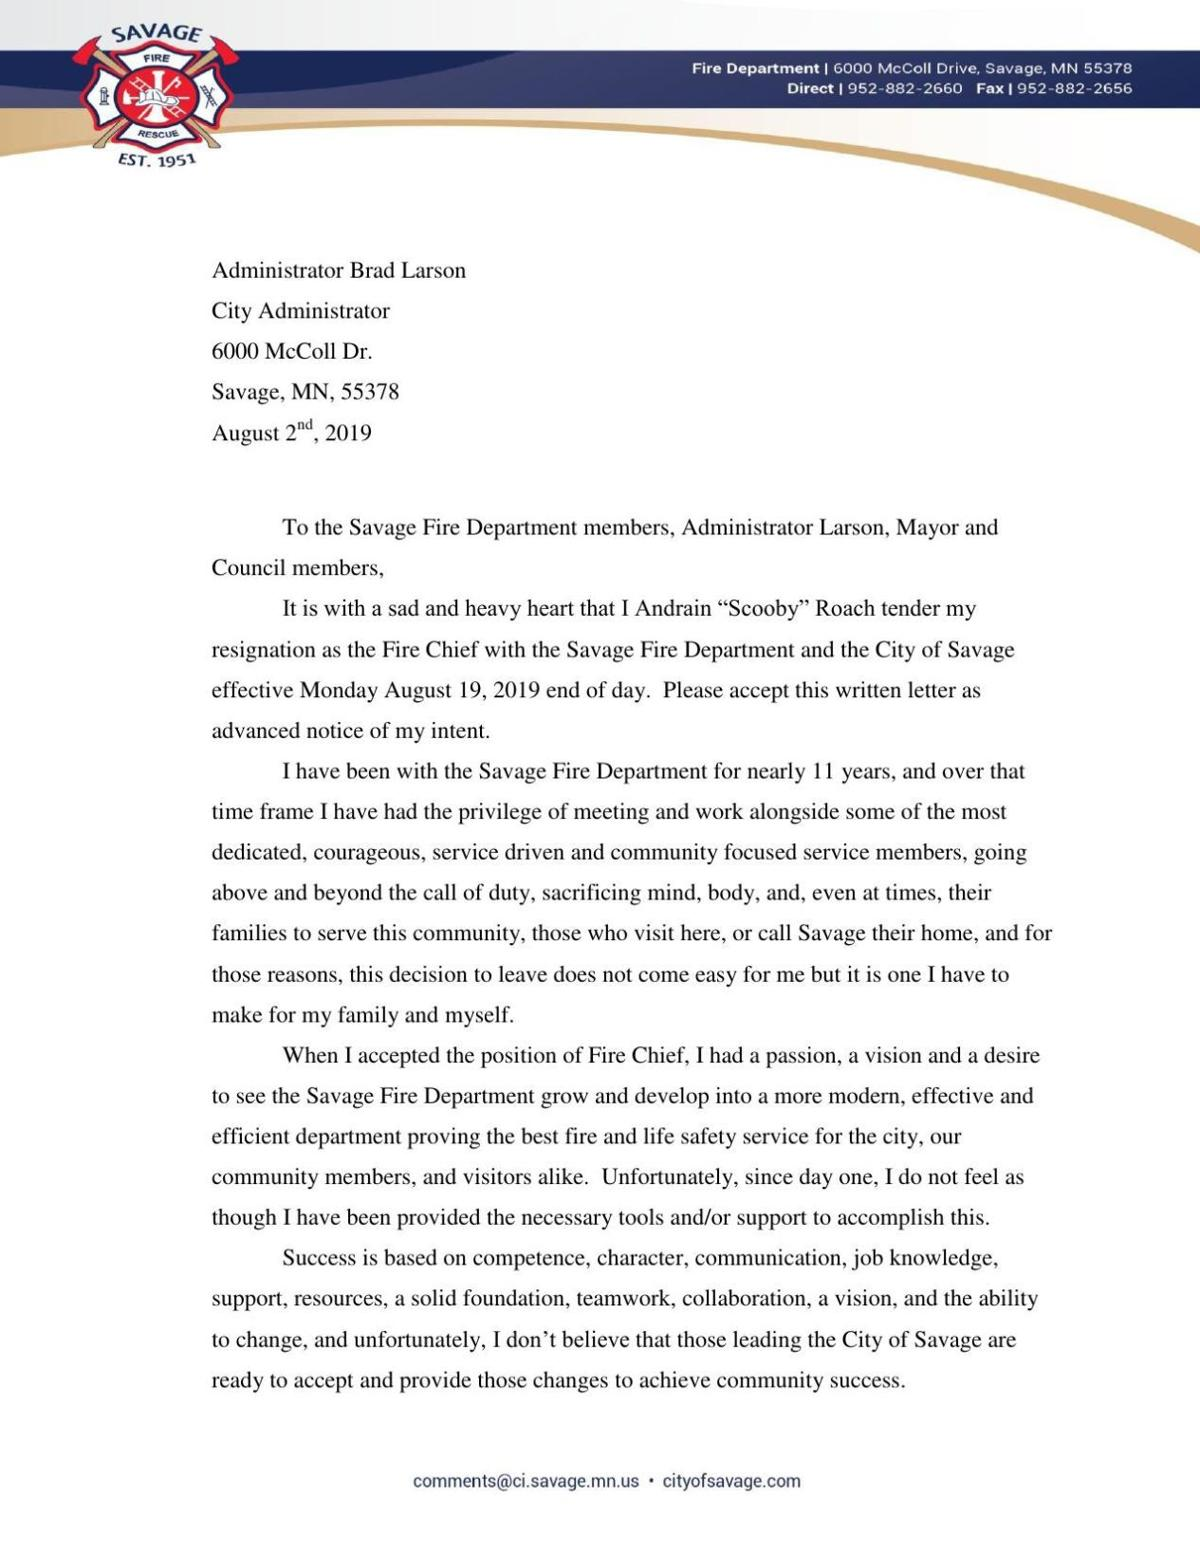 Andrain Road Resignation Letter